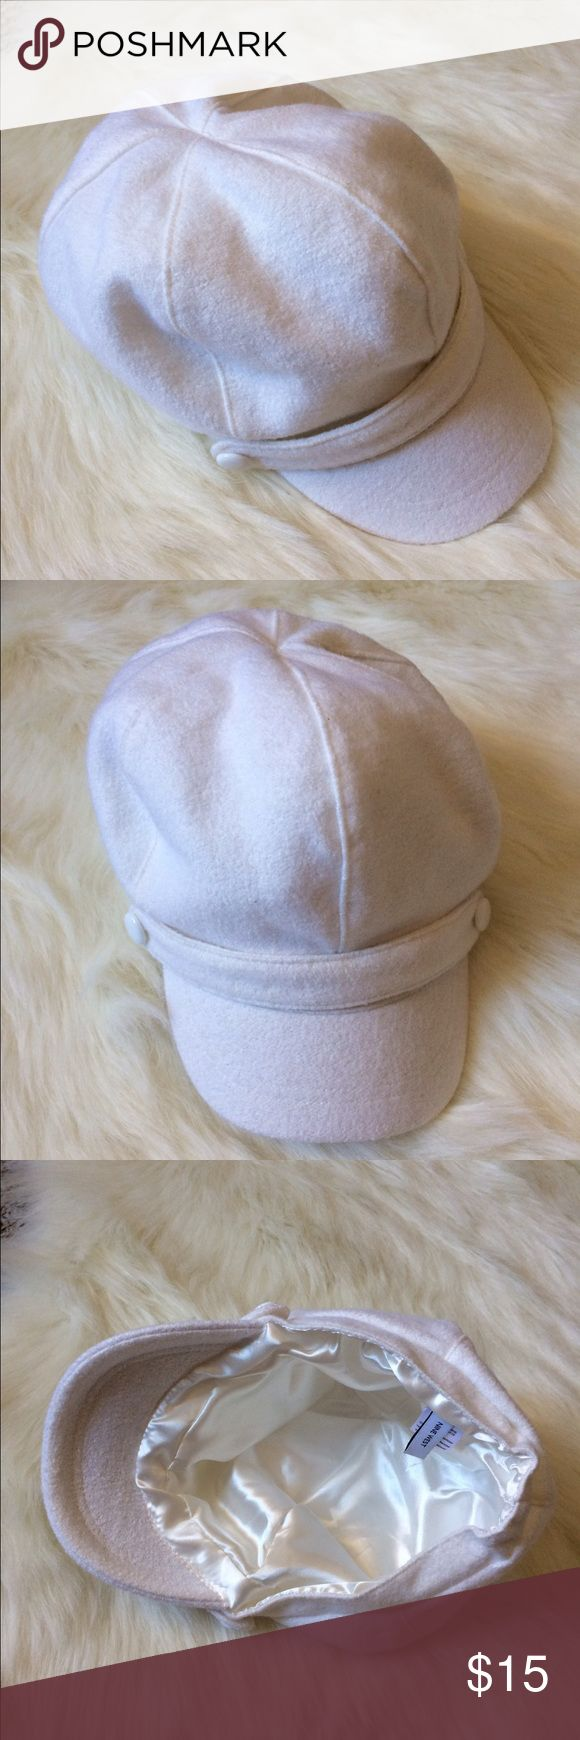 """Ivory page boy wool visor hat Wore once. Too big for me. 8"""" diameter. Slouchy fit. Ivory color. Satin lining. Some stretch in band. No stains. Best for spring, fall, or winter. By nine West Nine West Accessories Hats"""